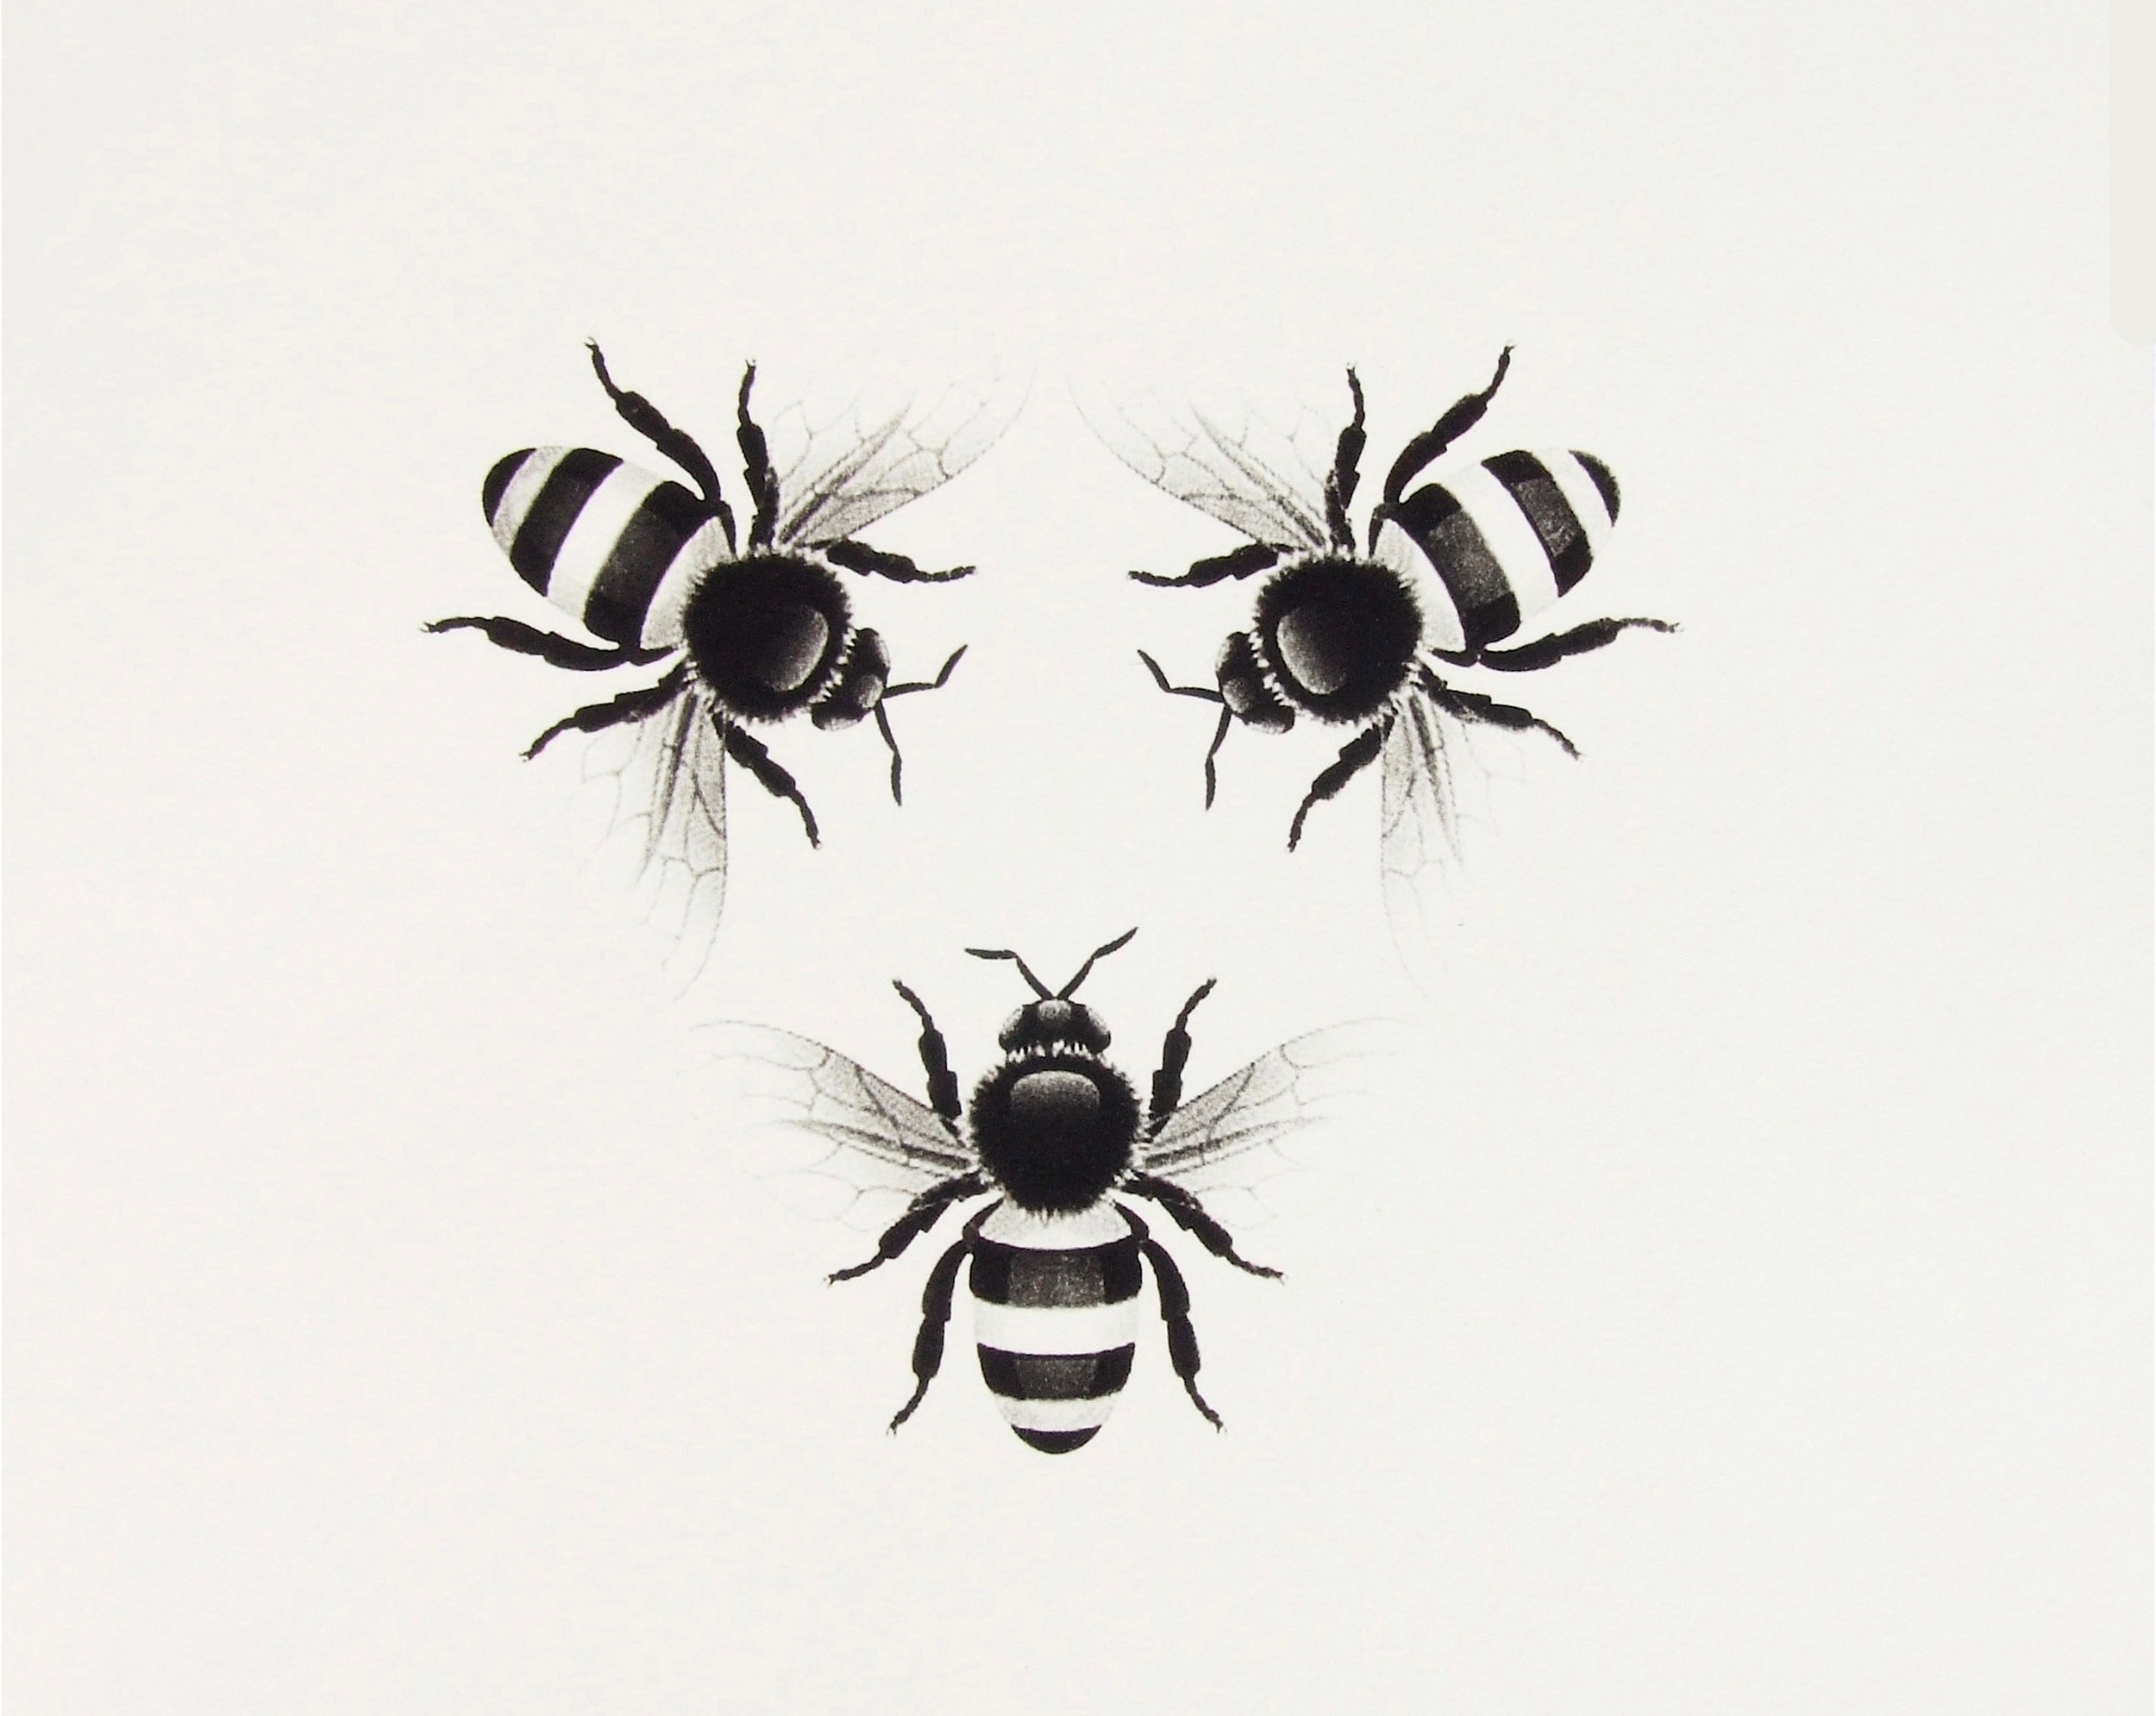 Scott Trevelyan  Bees Stare at Him  2014 photopolymer etching on Hahnemuhle paper, beeswax and timber frame 40 x 30cm